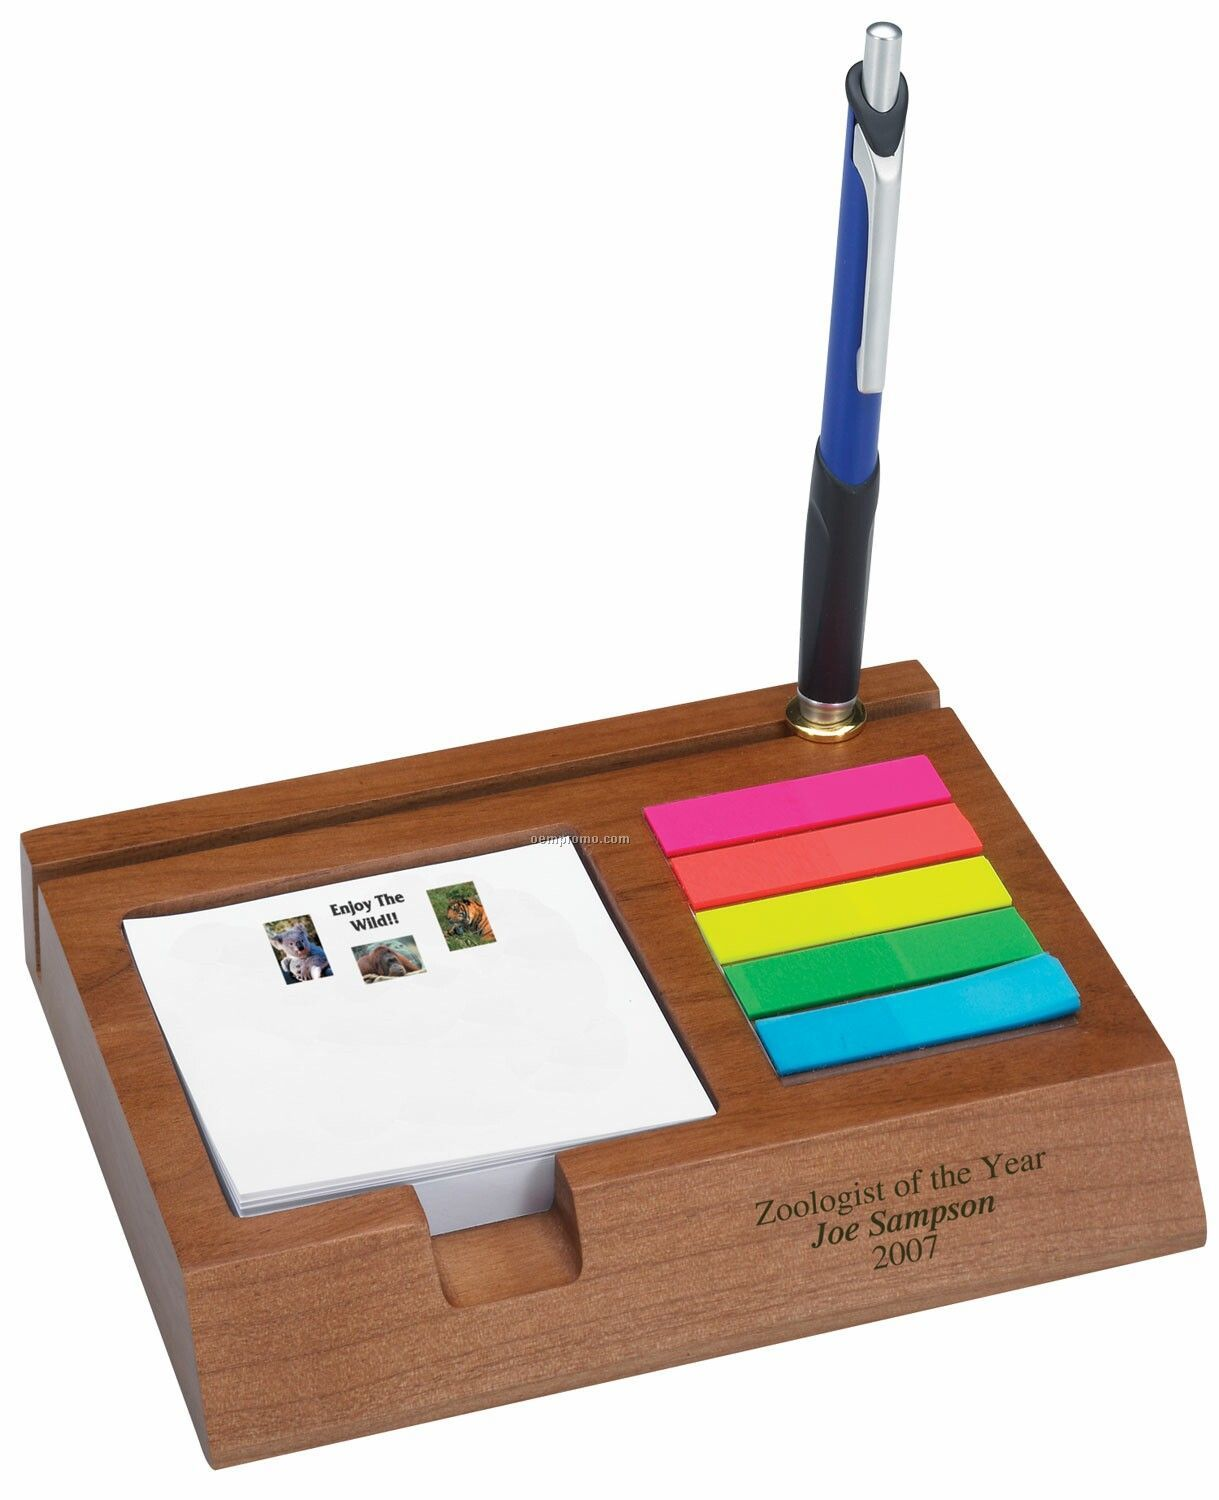 Club Level Wood Memo Pad Holder W/ Adhesive Notes & Flags